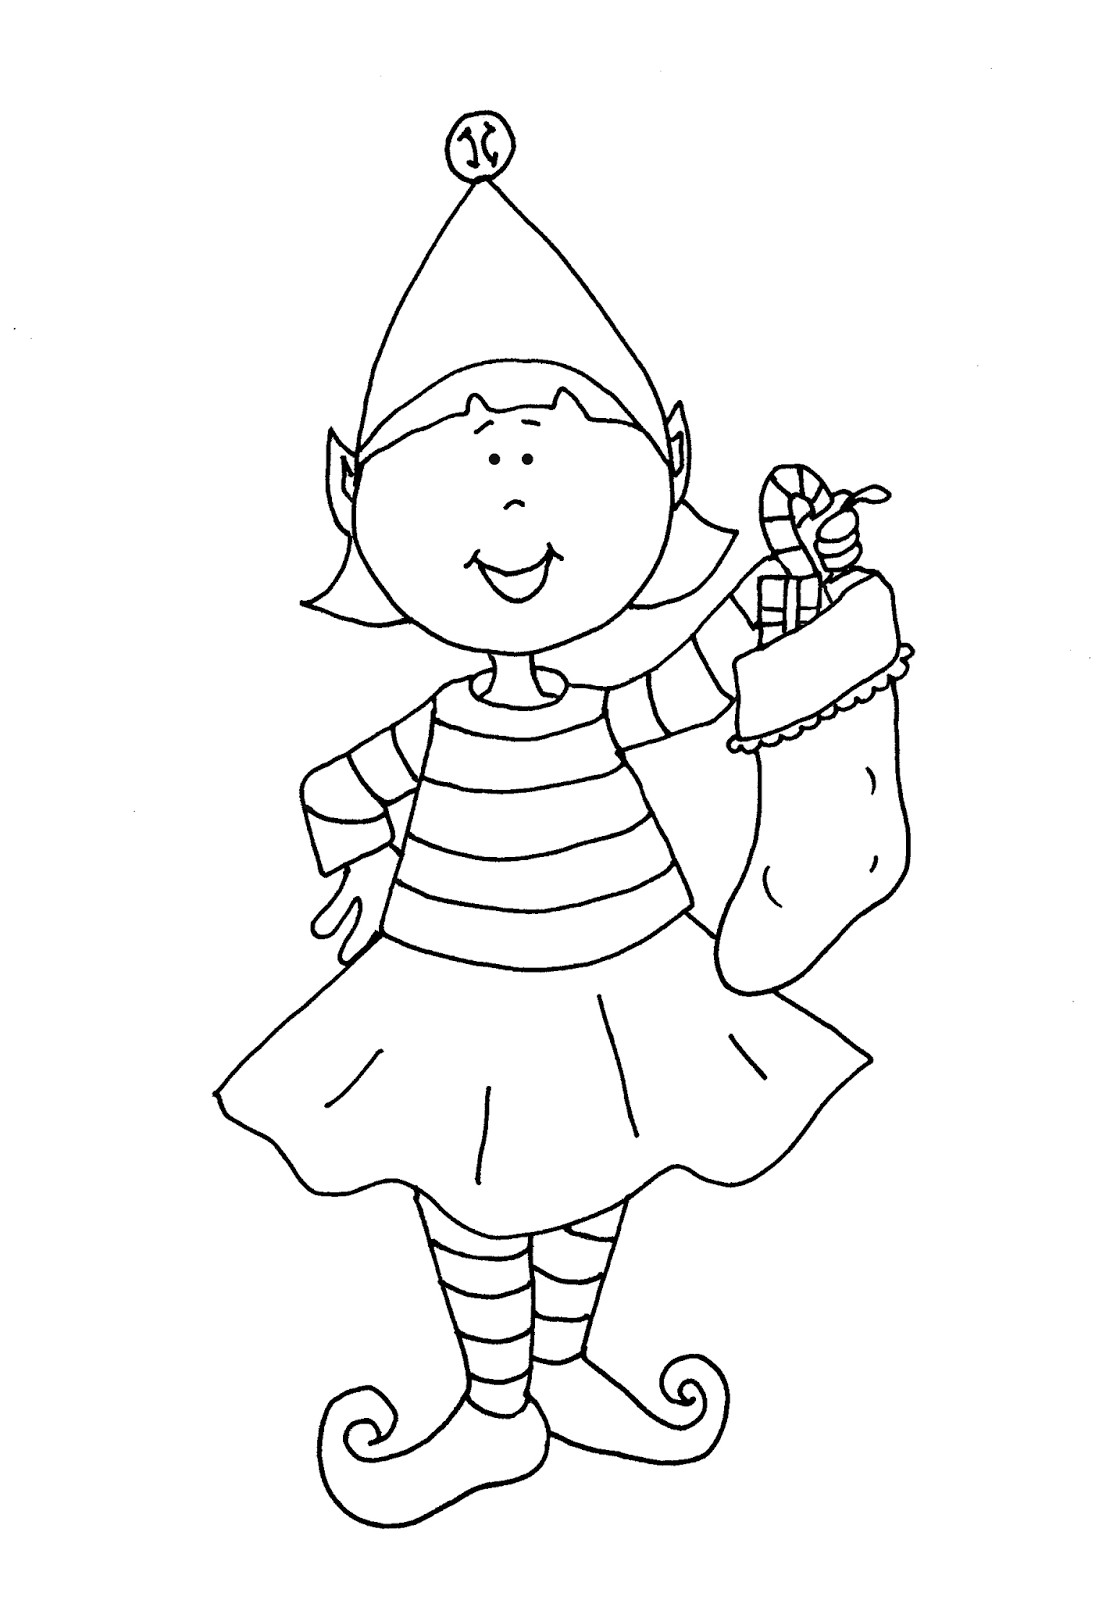 Coloring Sheets For Girls Printable Chistmas  Printable Girl Elf The Shelf Coloring Pages Coloring Home